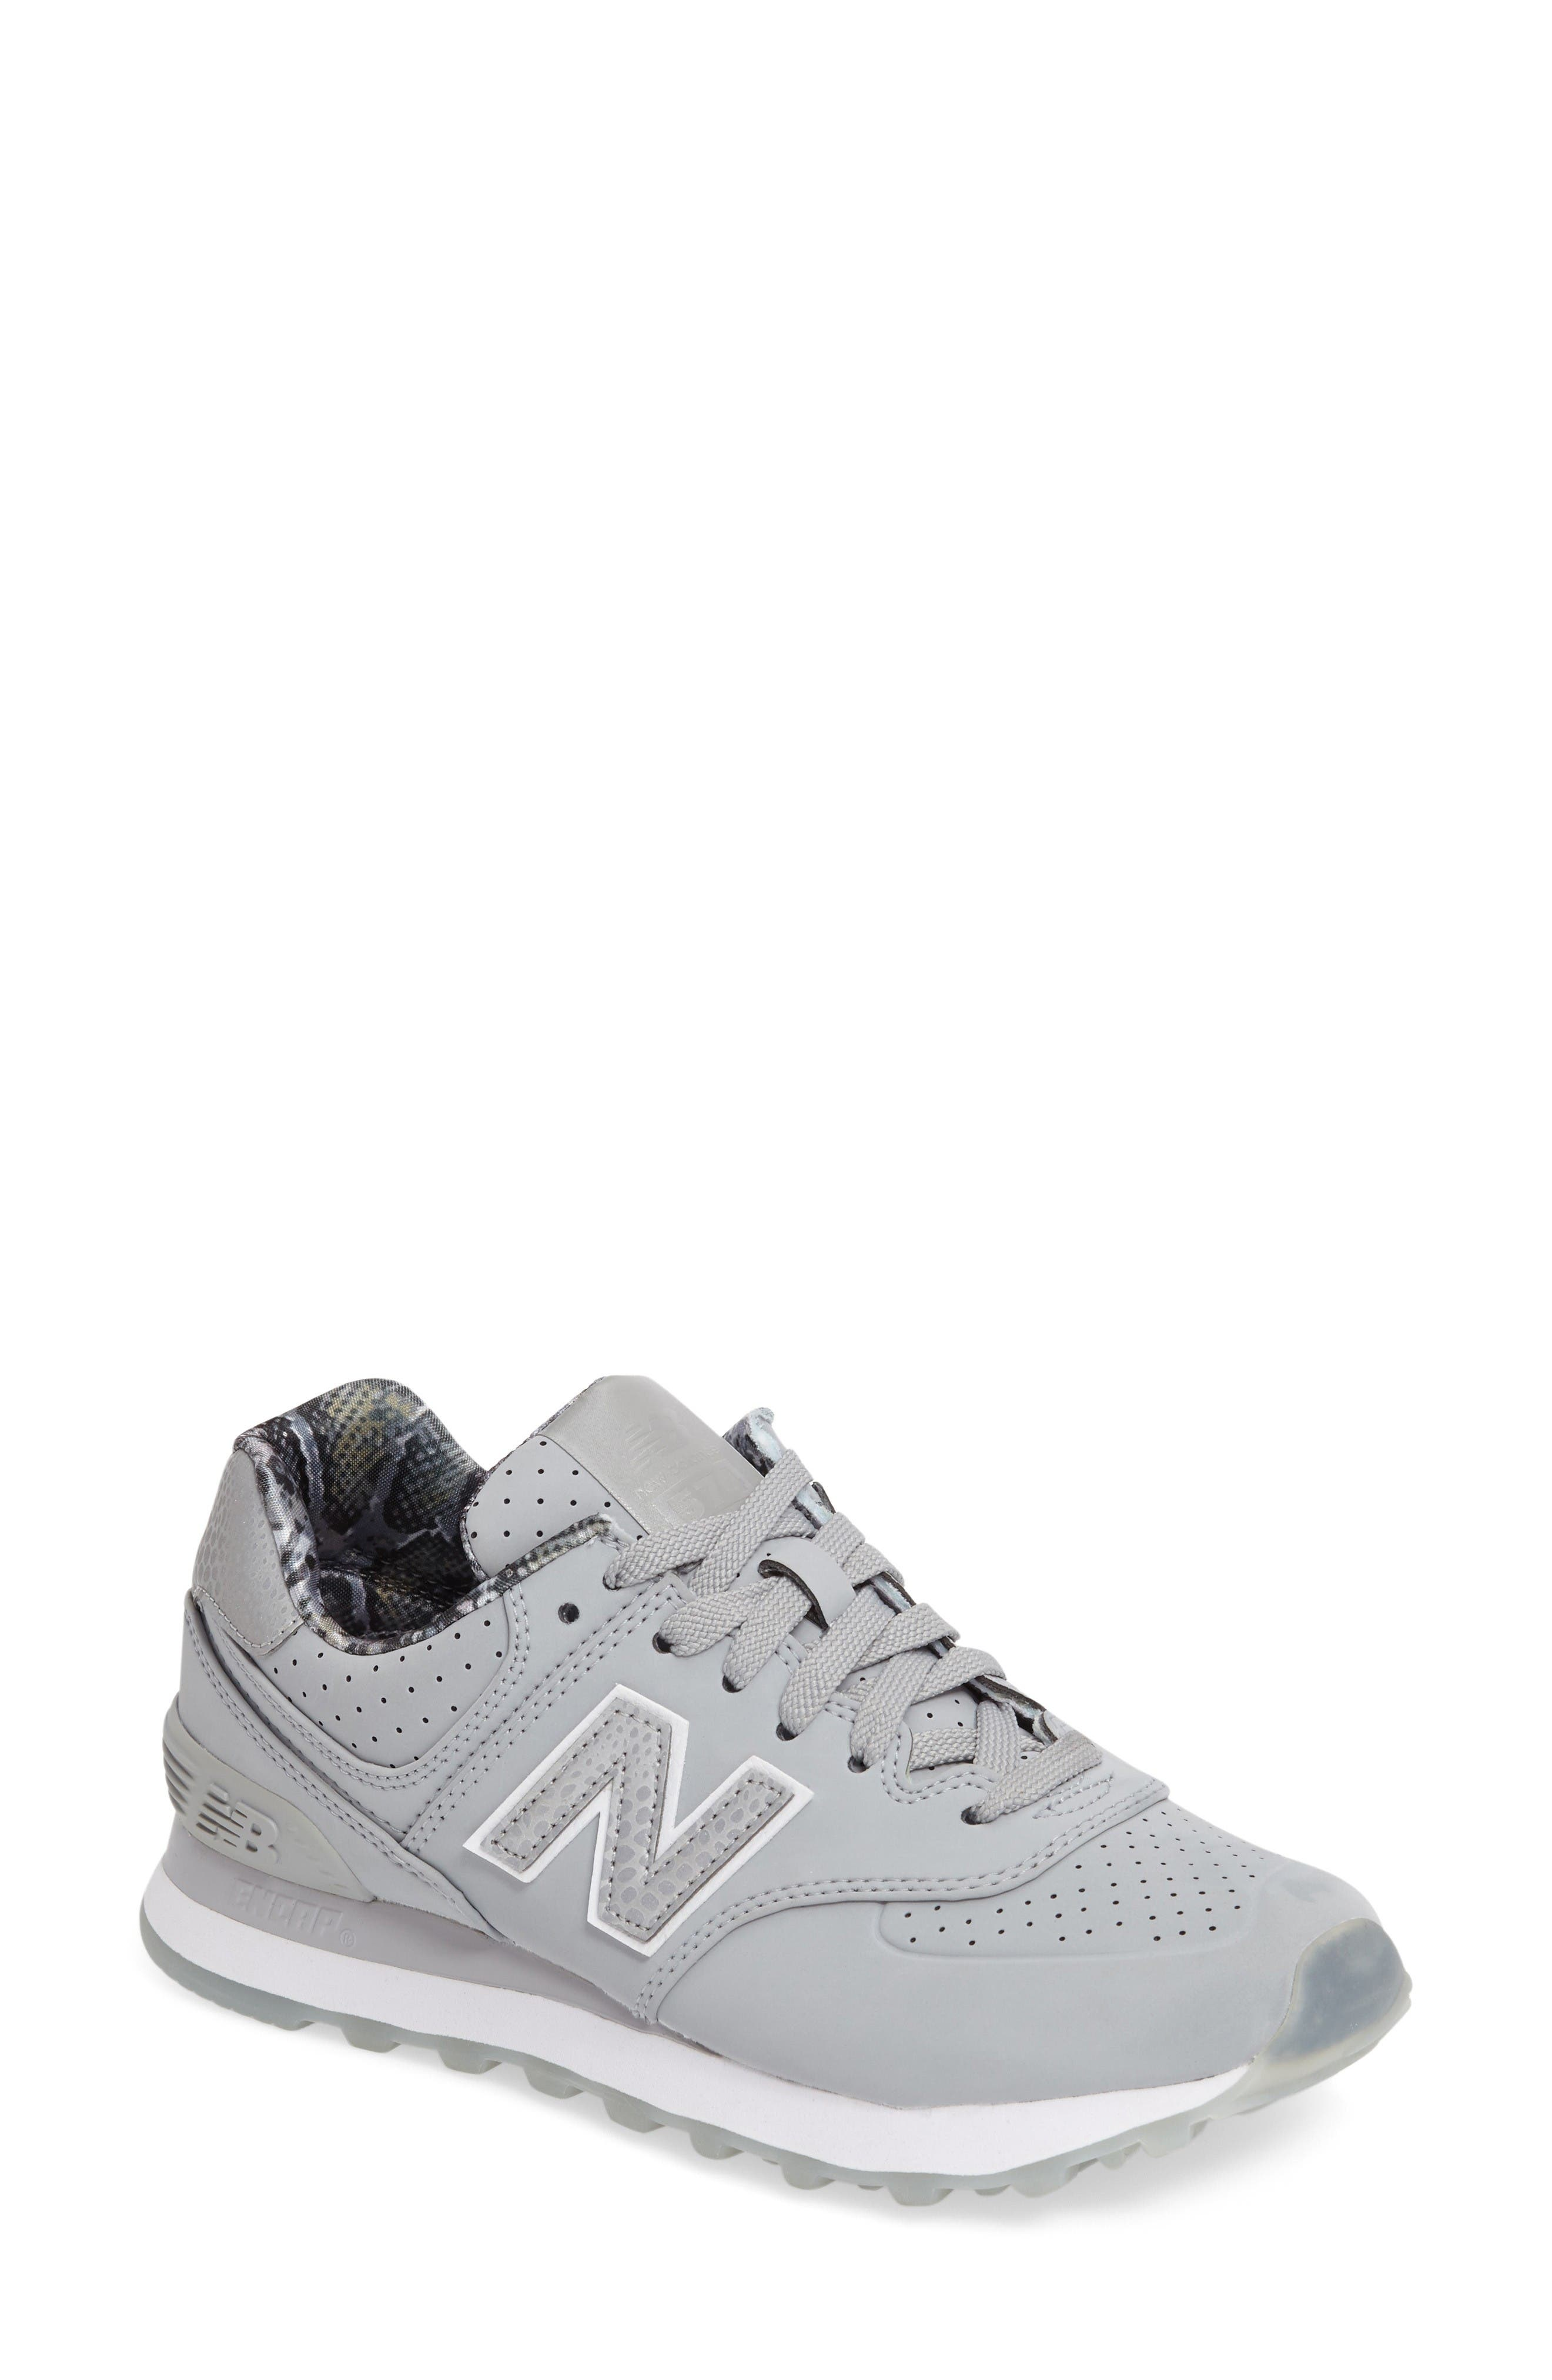 Alternate Image 1 Selected - New Balance 574 Luxe Rep Sneaker (Women)